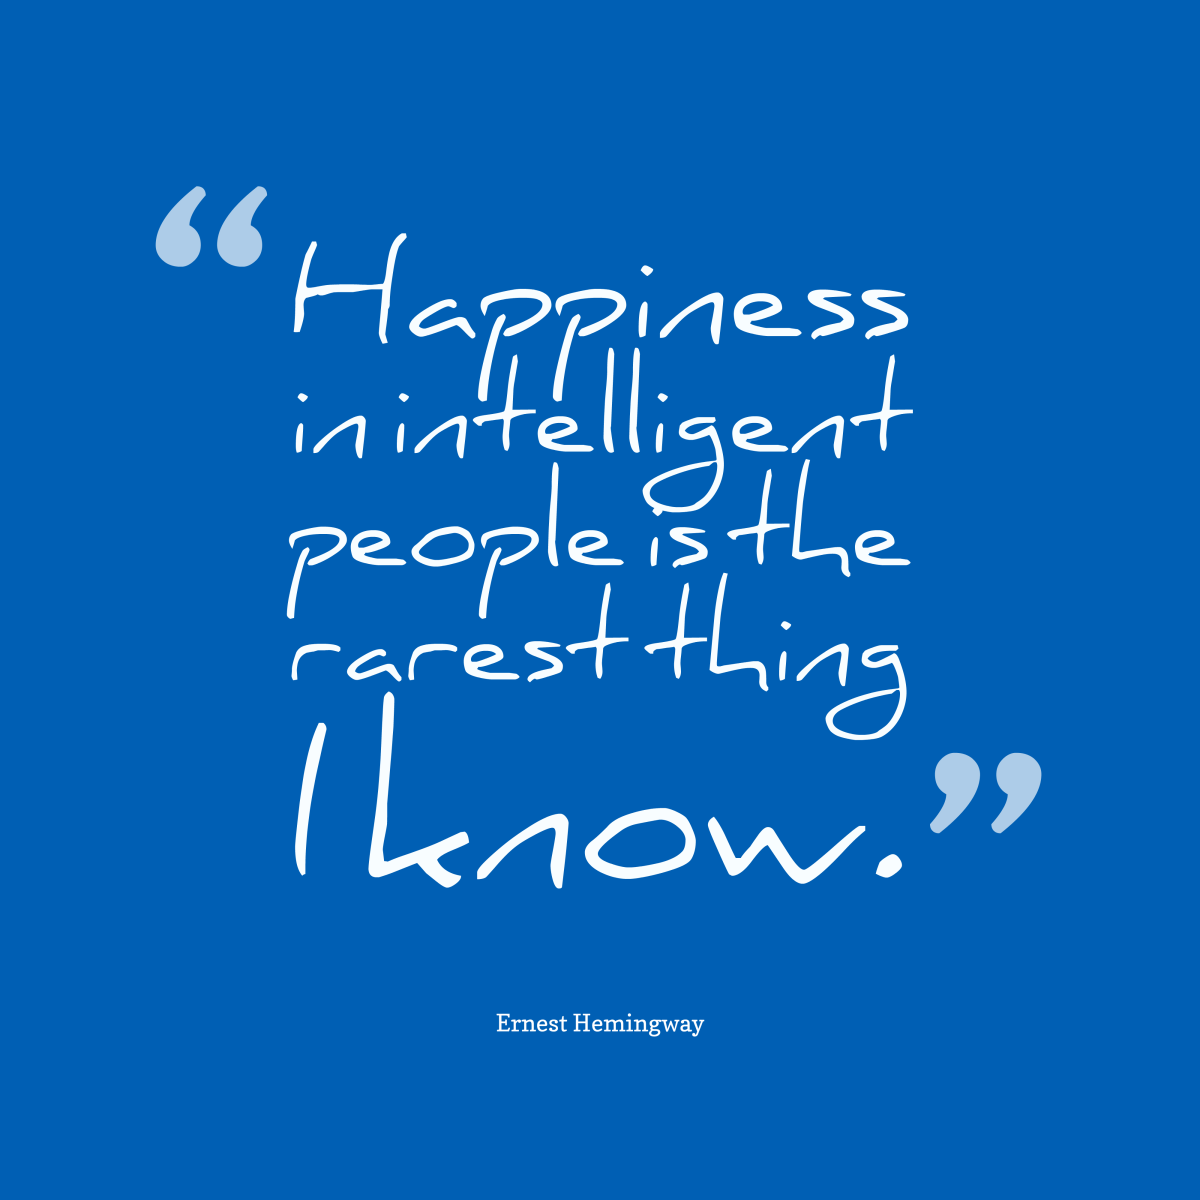 Happiness-in-intelligent-people-is__quotes-by-Ernest-Hemingway-40